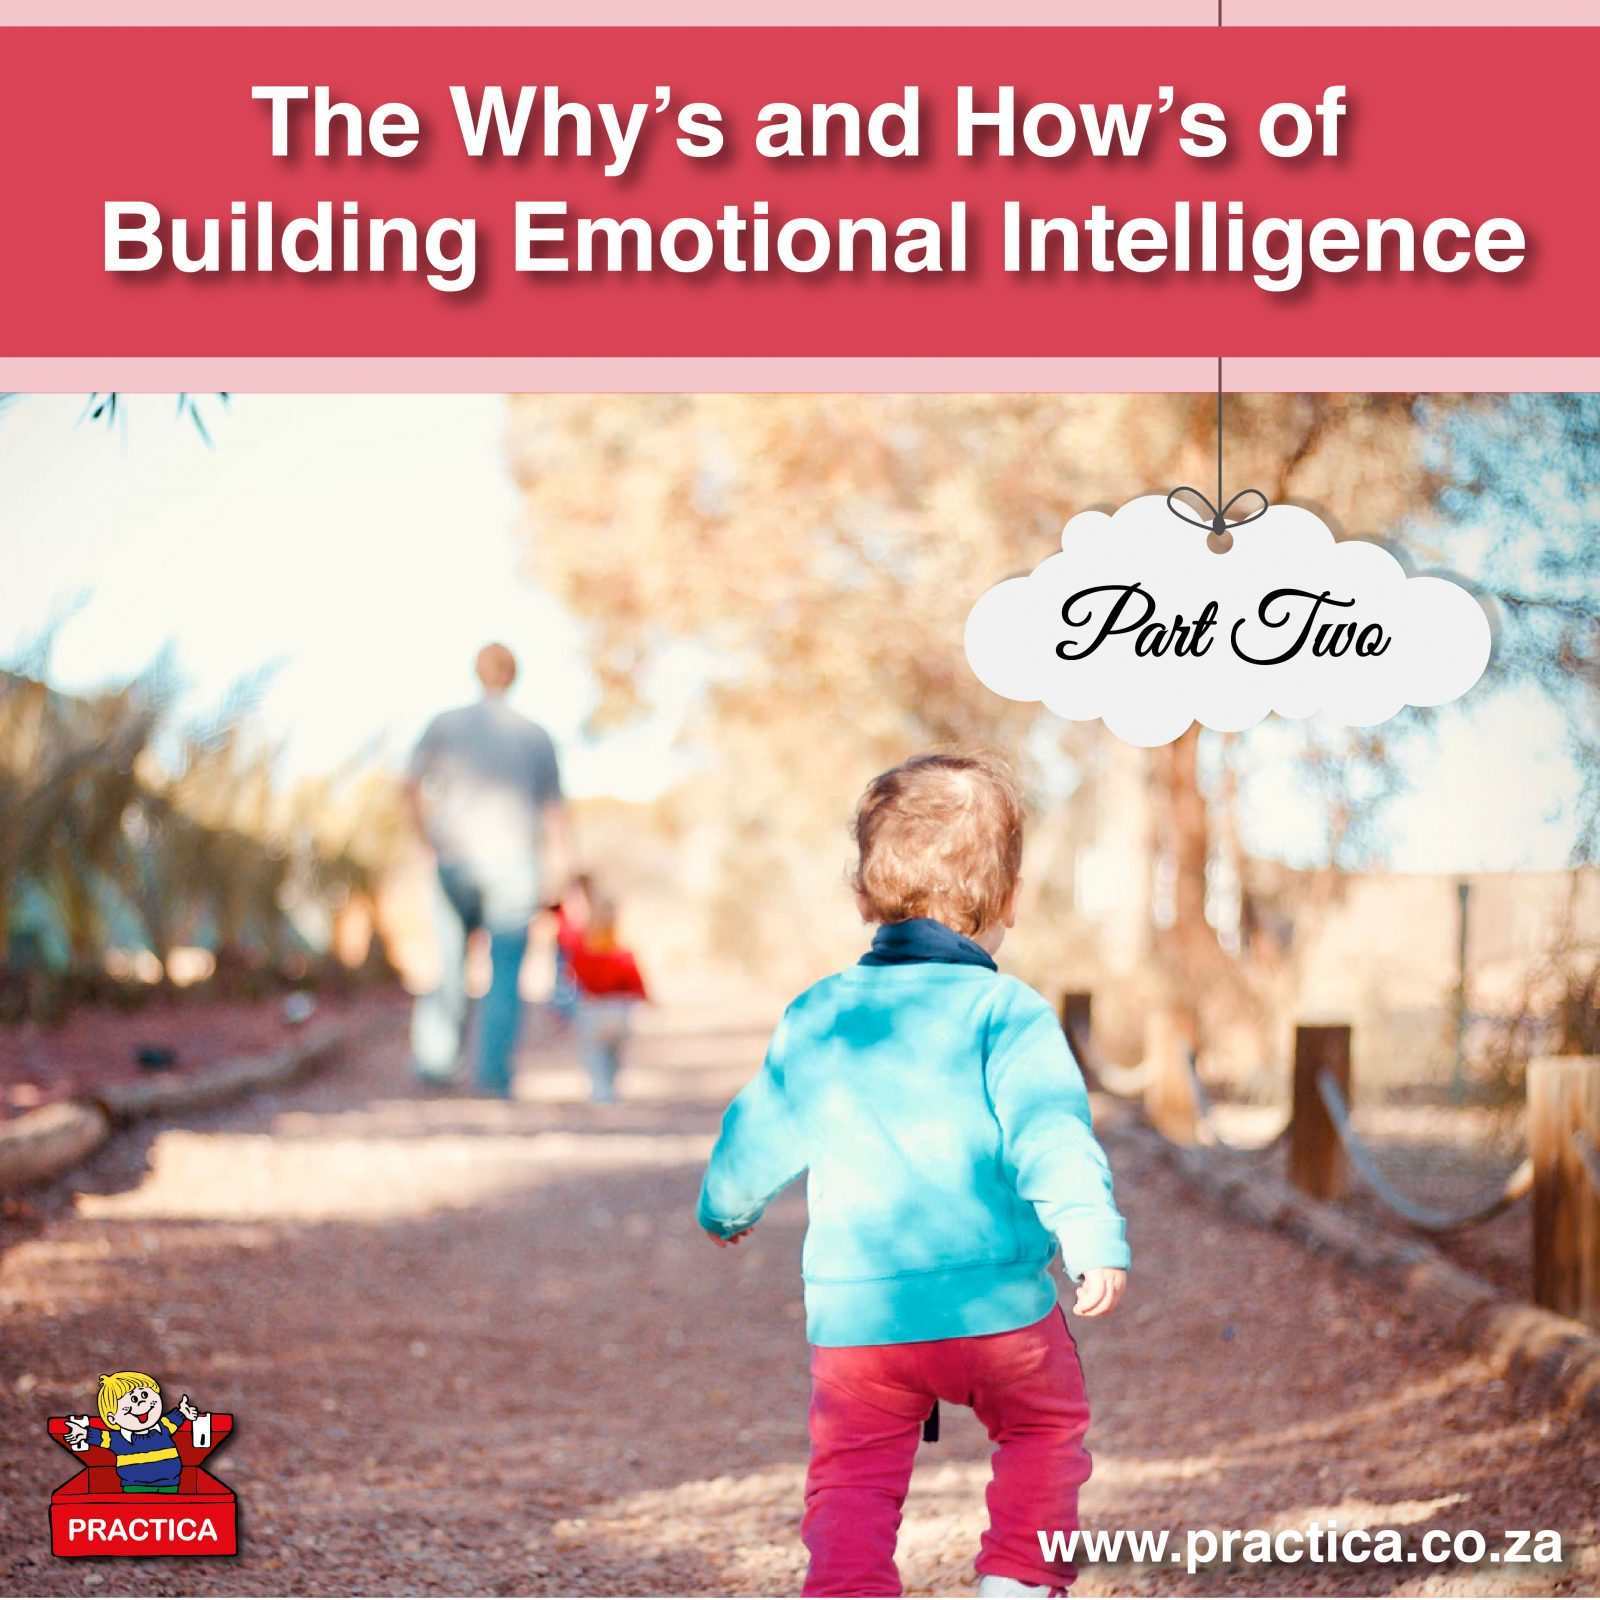 The Why's and How's of Building Emotional Intelligence - Part 2